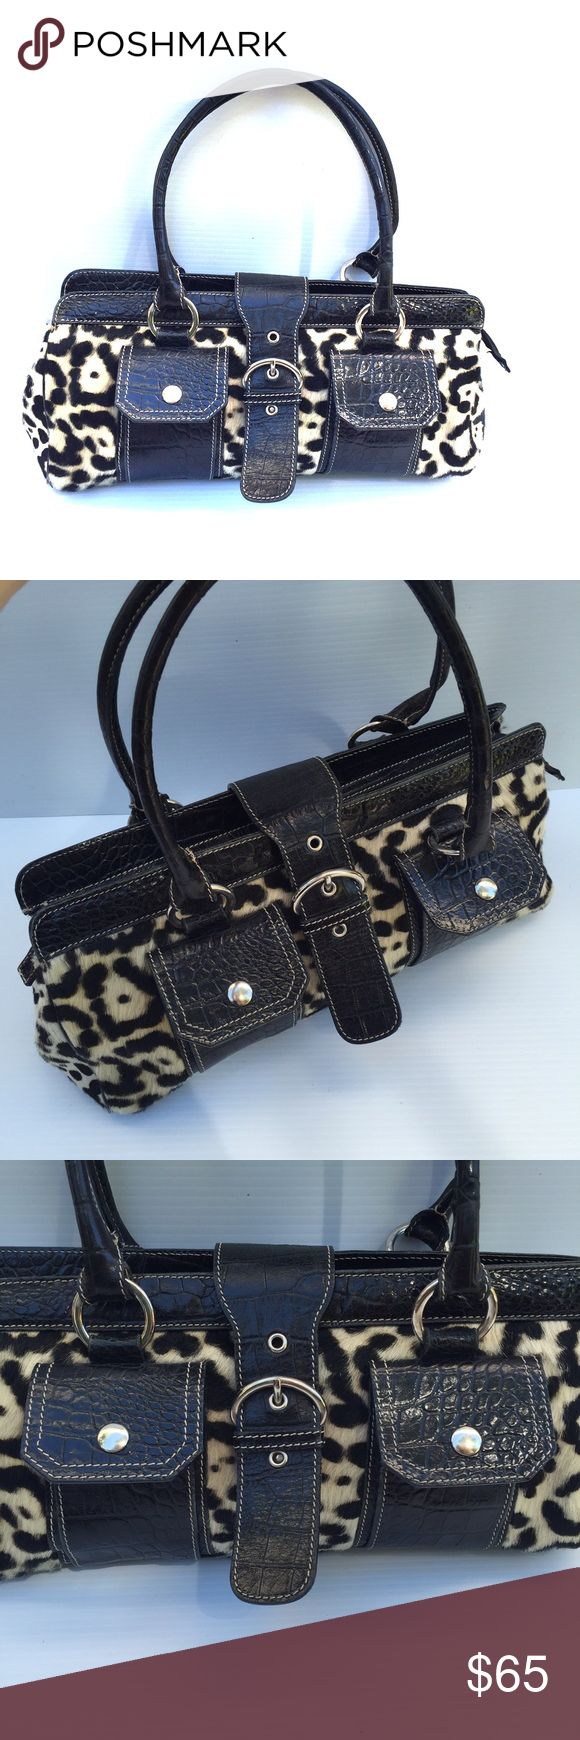 "Saks Fifth Avenue Black animal print Satchel For Sale Black Embossed Leather Animal Print Satchel. 💯 embossed croc leather. 💯 printed cowhide detail. 📢Made in Italy. Gently used. Great condition. Two small front pockets. One inside zippered pocket. Measures: L 15.5"" W 6"" H 6.5"" Handle drop 8"" Saks Fifth Avenue Bags Satchels"